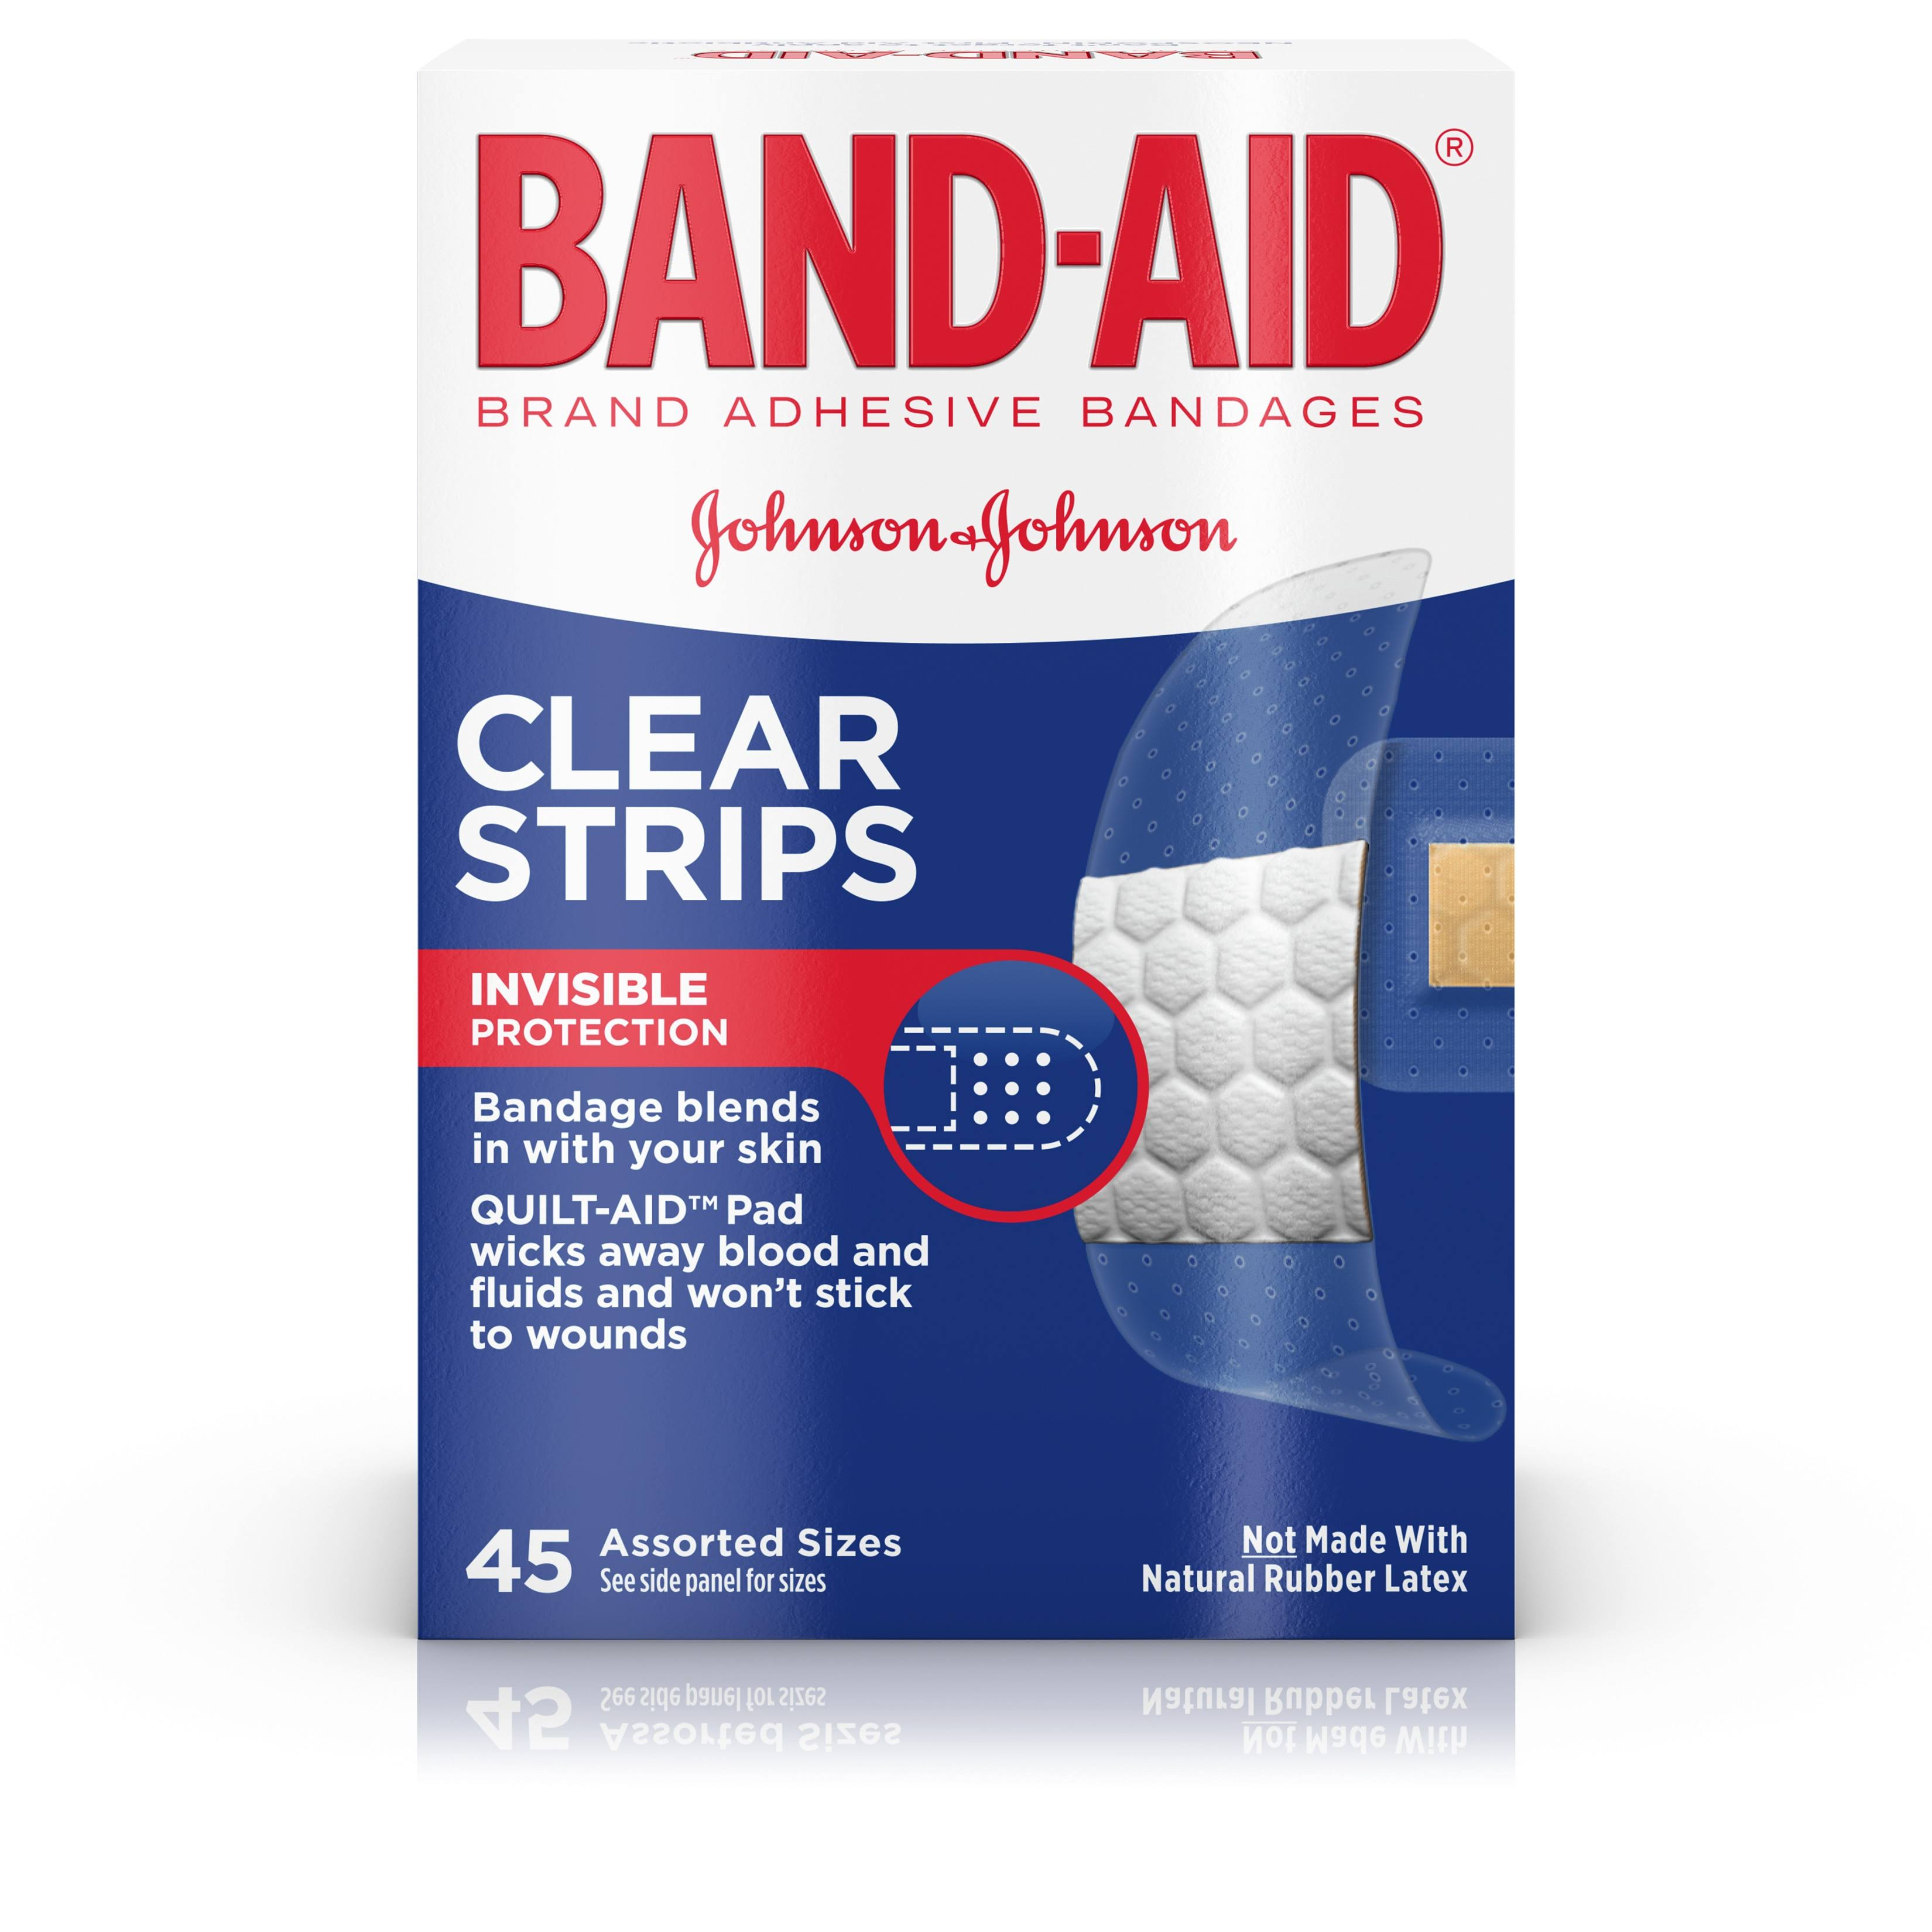 Band-Aid Clear Strips Adhesive Bandage - 45ct